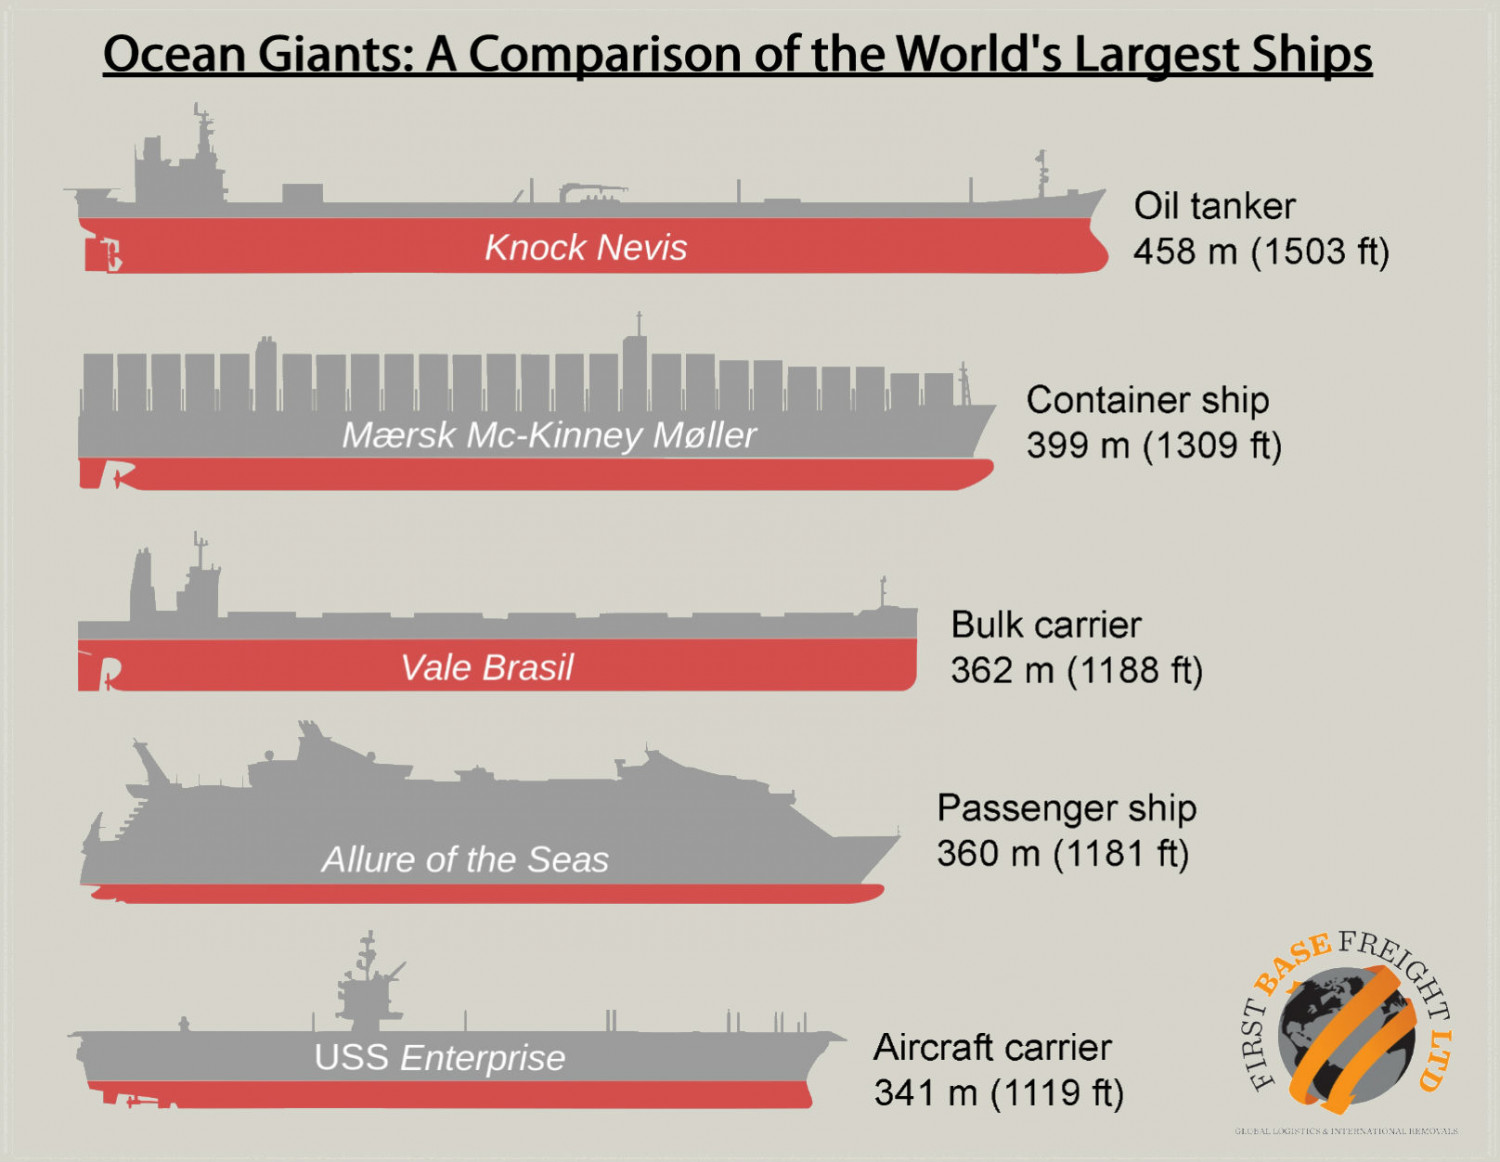 Ocean Giants: A Comparison of the World's Largest Ships Infographic